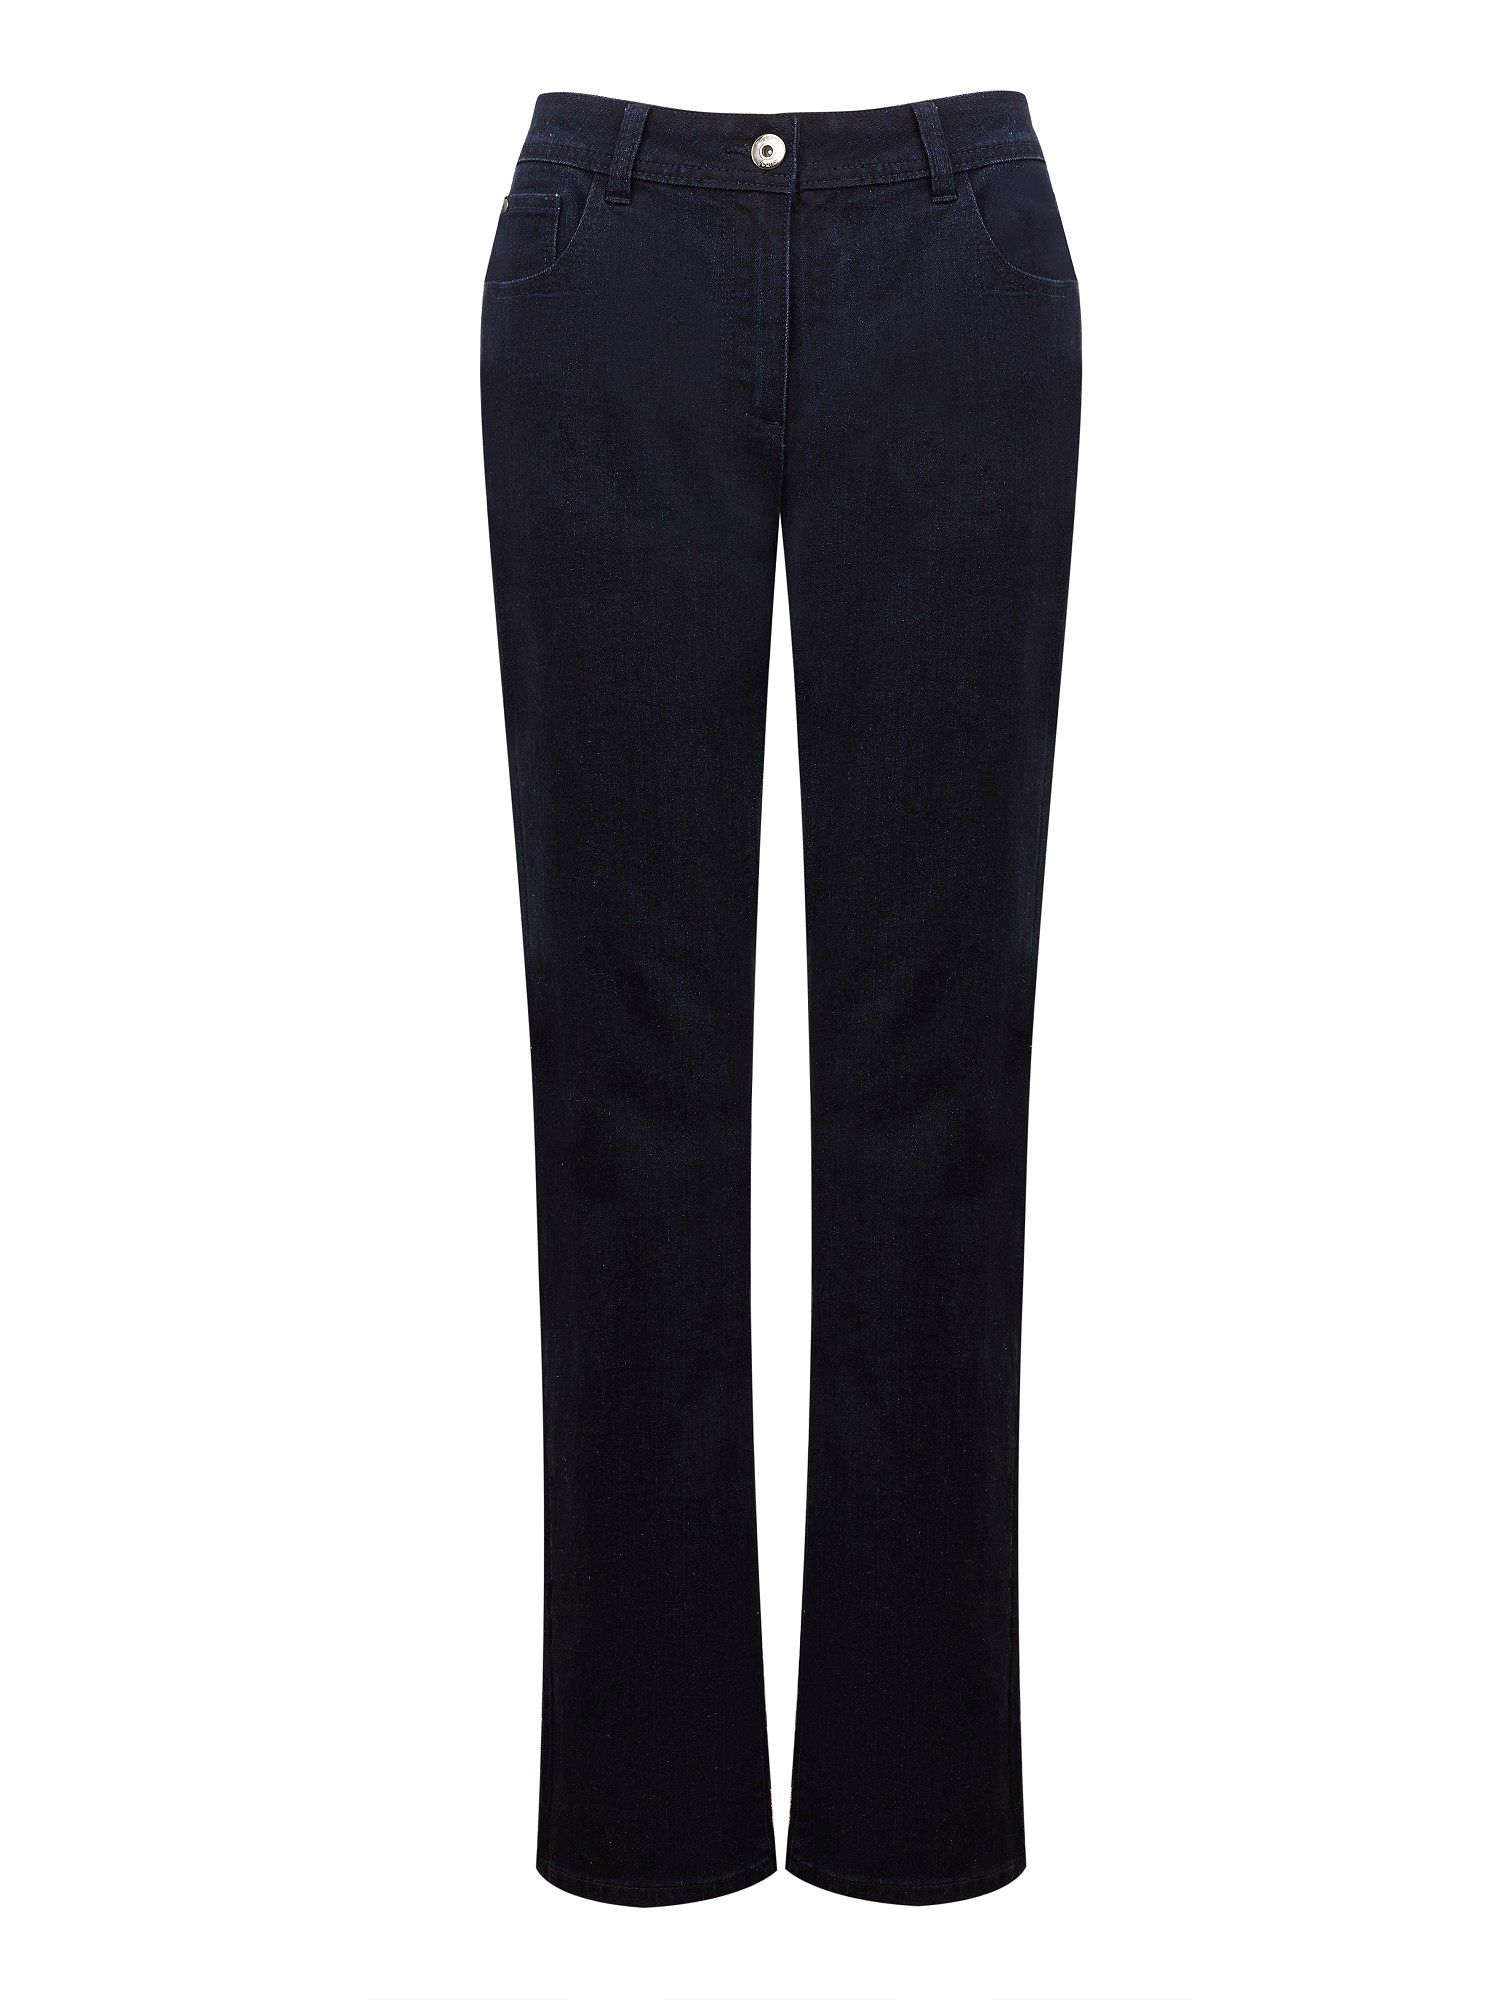 Dark wash classic leg jean long